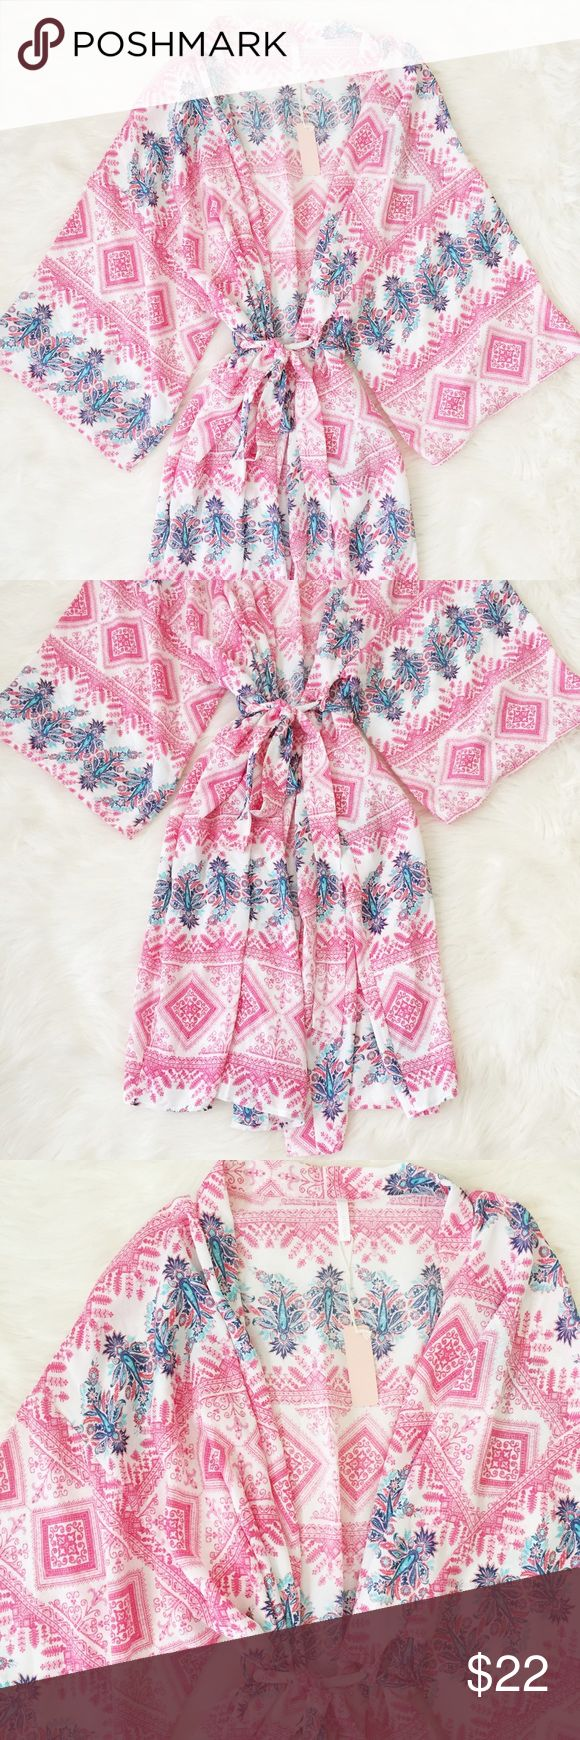 Pink Blush Aztec Printed Robe New w/ tags Aztec Printed Robe from Pinkblush perfect for maternity or non-maternity! Reasonable offers always accepted. Bundle more to save more 💖✨ Pinkblush Intimates & Sleepwear Robes